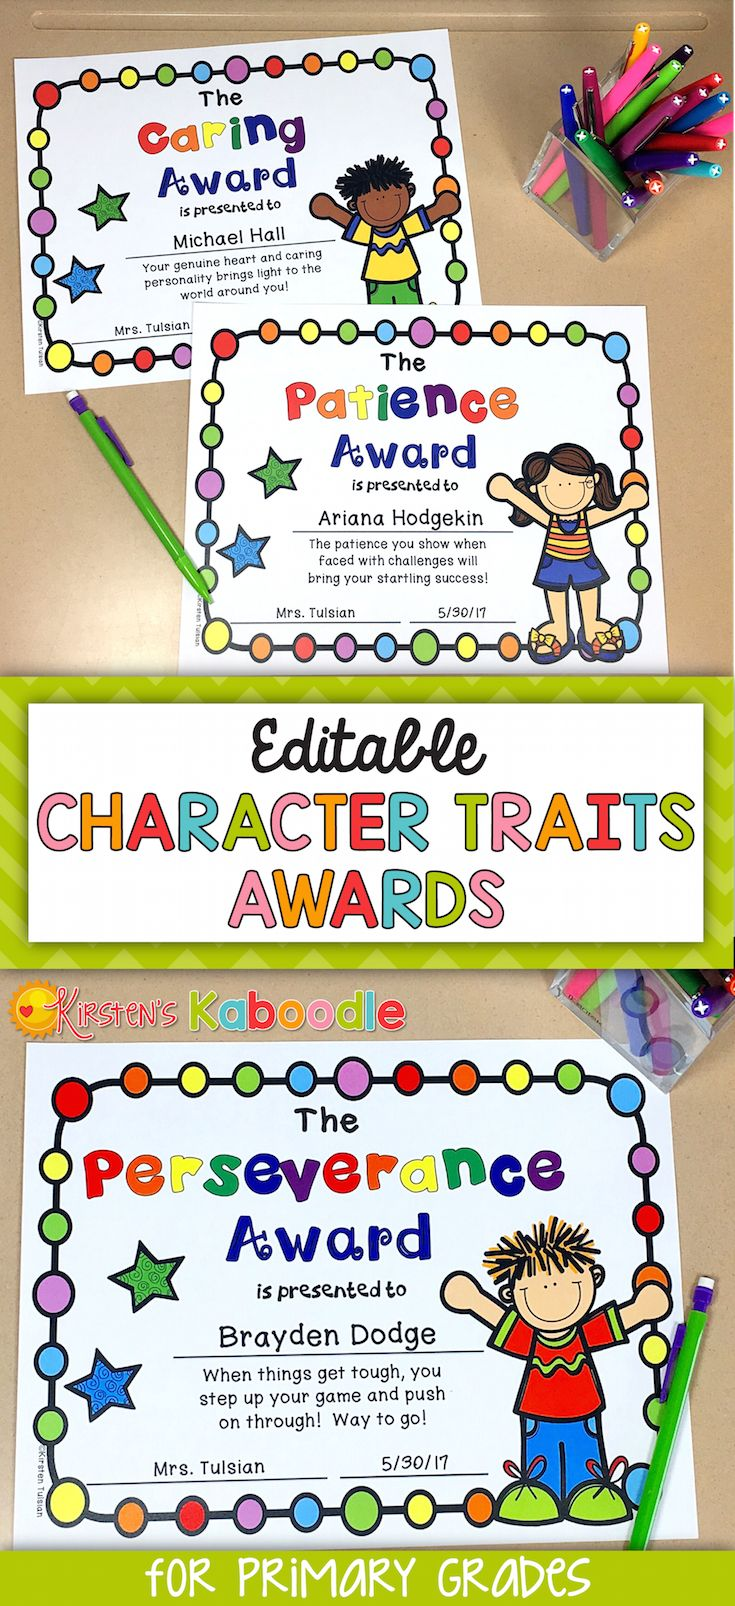 Are you looking for unique, editable awards for your students? These character traits awards are perfect for any Kindergarten, 1st, 2nd, or 3rd grade classroom. The best part about these end of year awards is that they celebrate inherent traits in your students instead of focusing on abilities or skills. Each award comes in various versions (black and white, color, gender, and ethnicity) with editable fields for names and date. Go ahead, help your students feel proud of WHO THEY ARE and not…